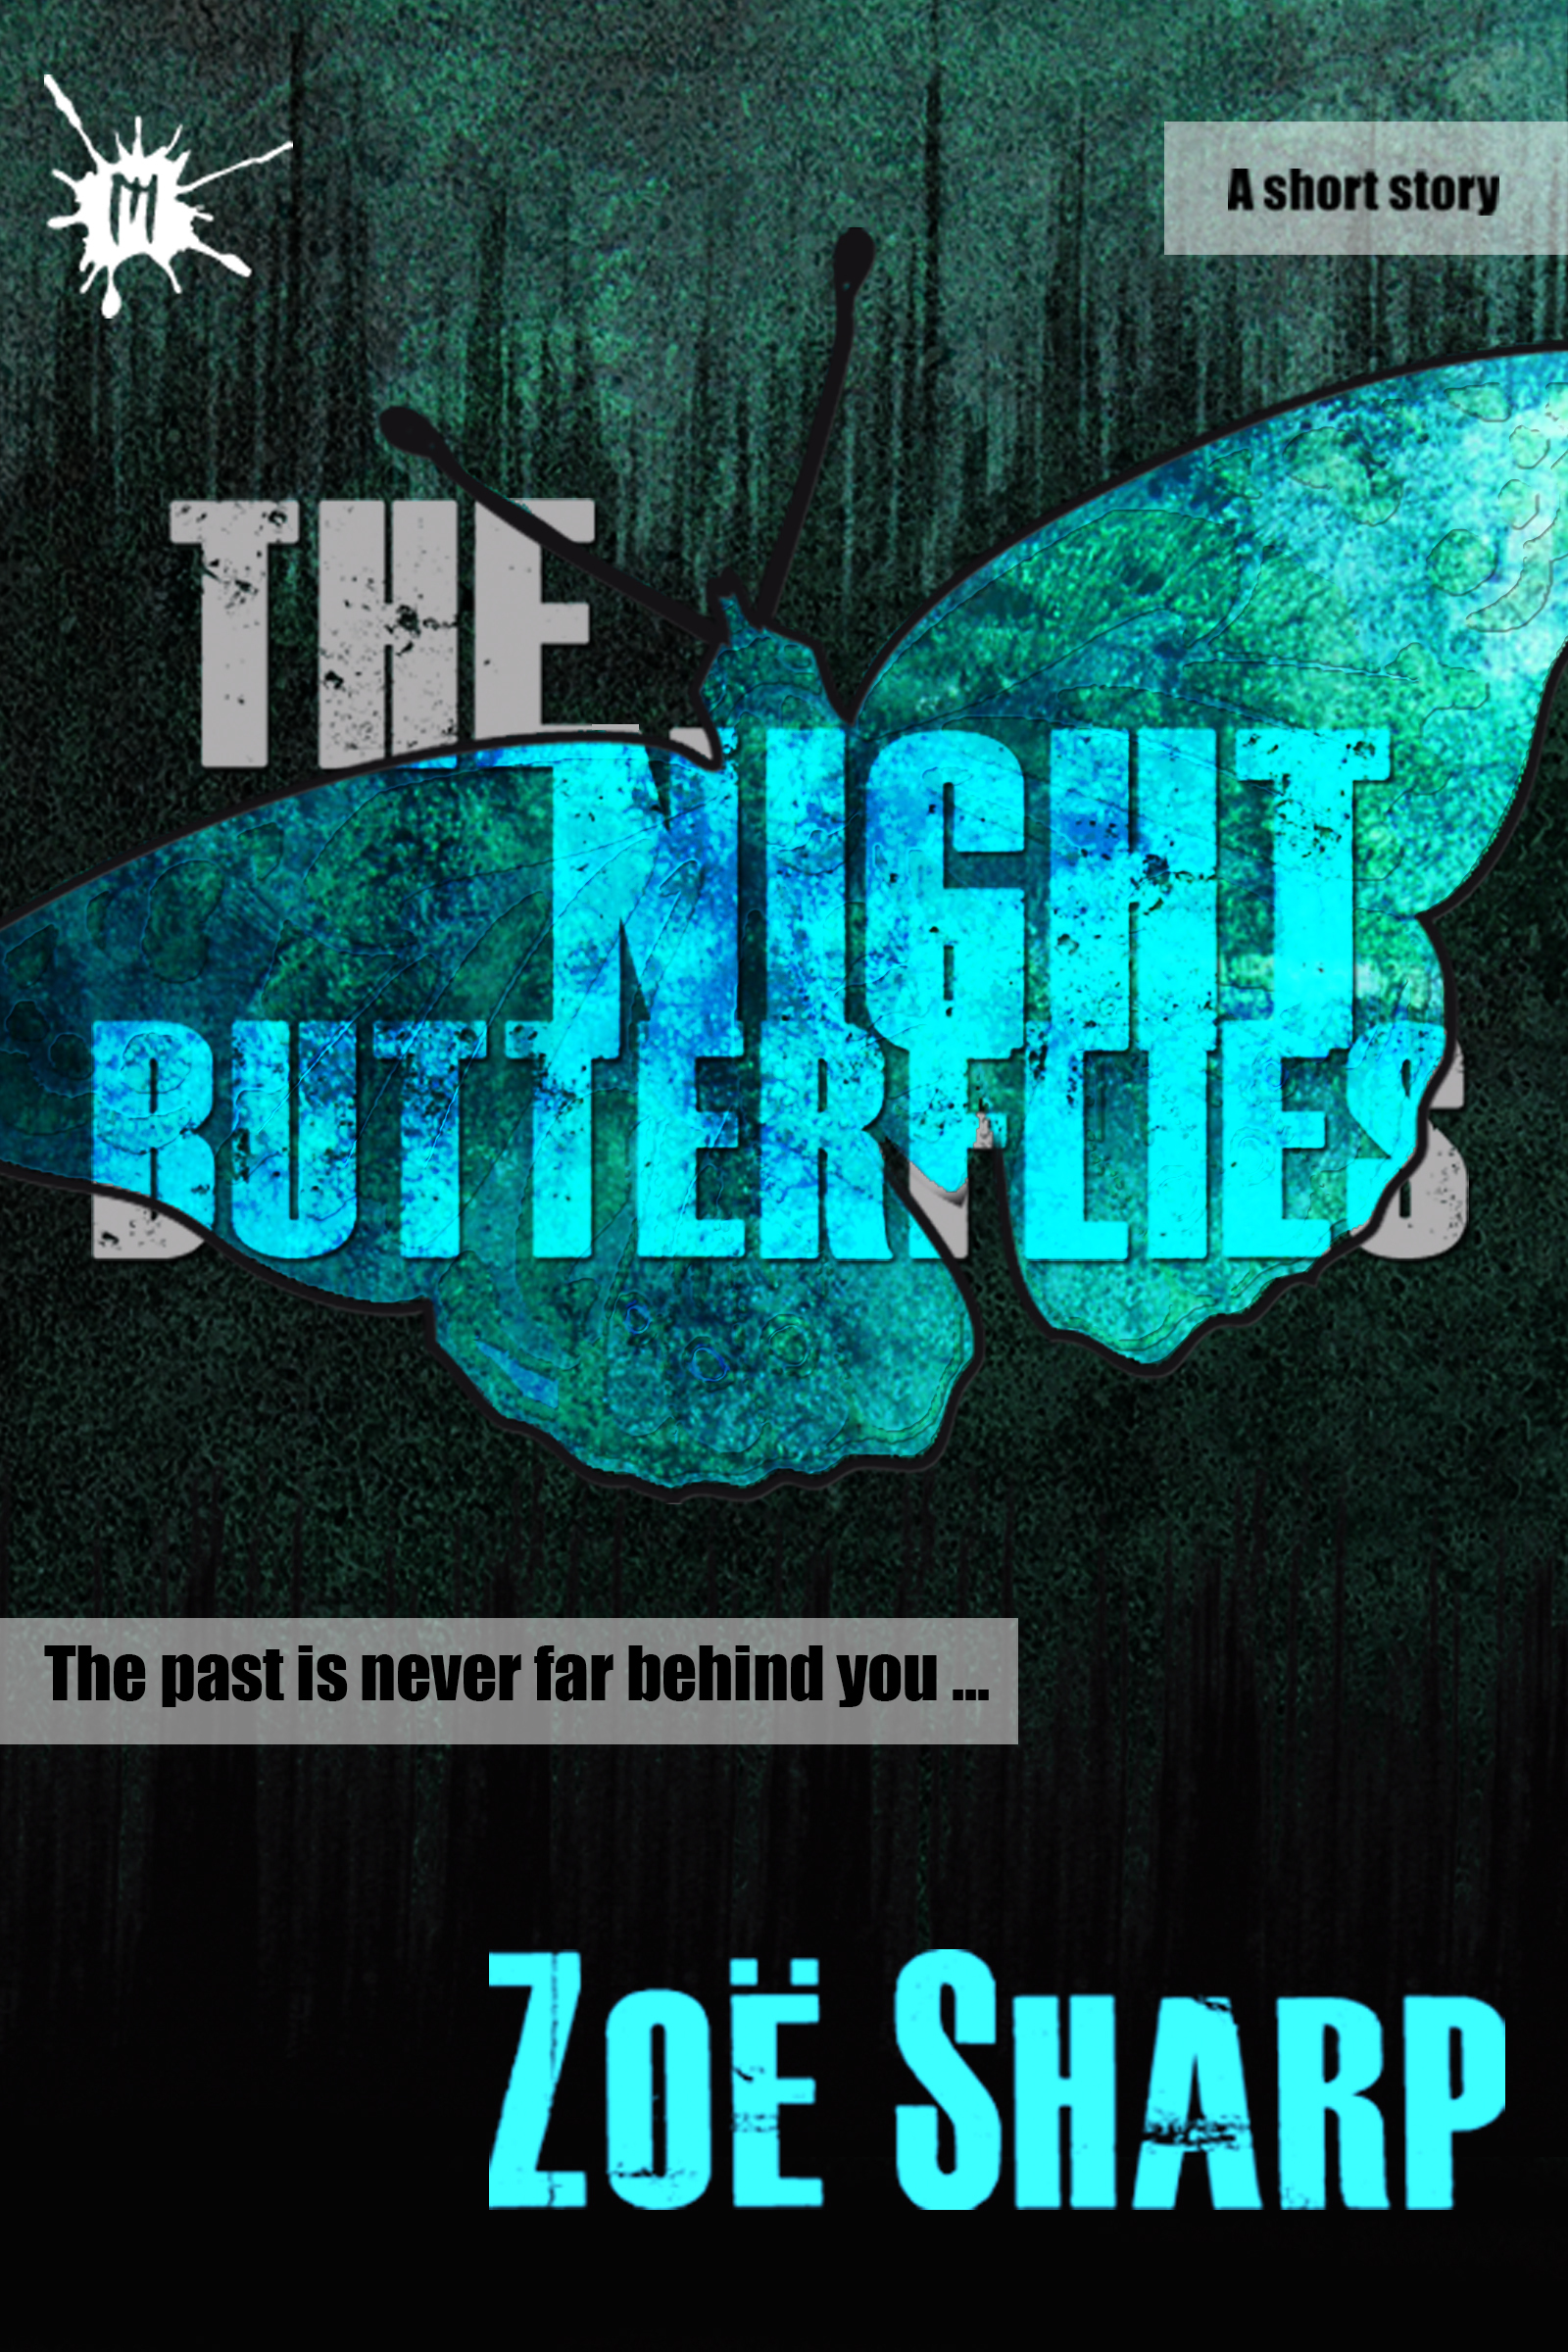 The Night Butterflies: a short story